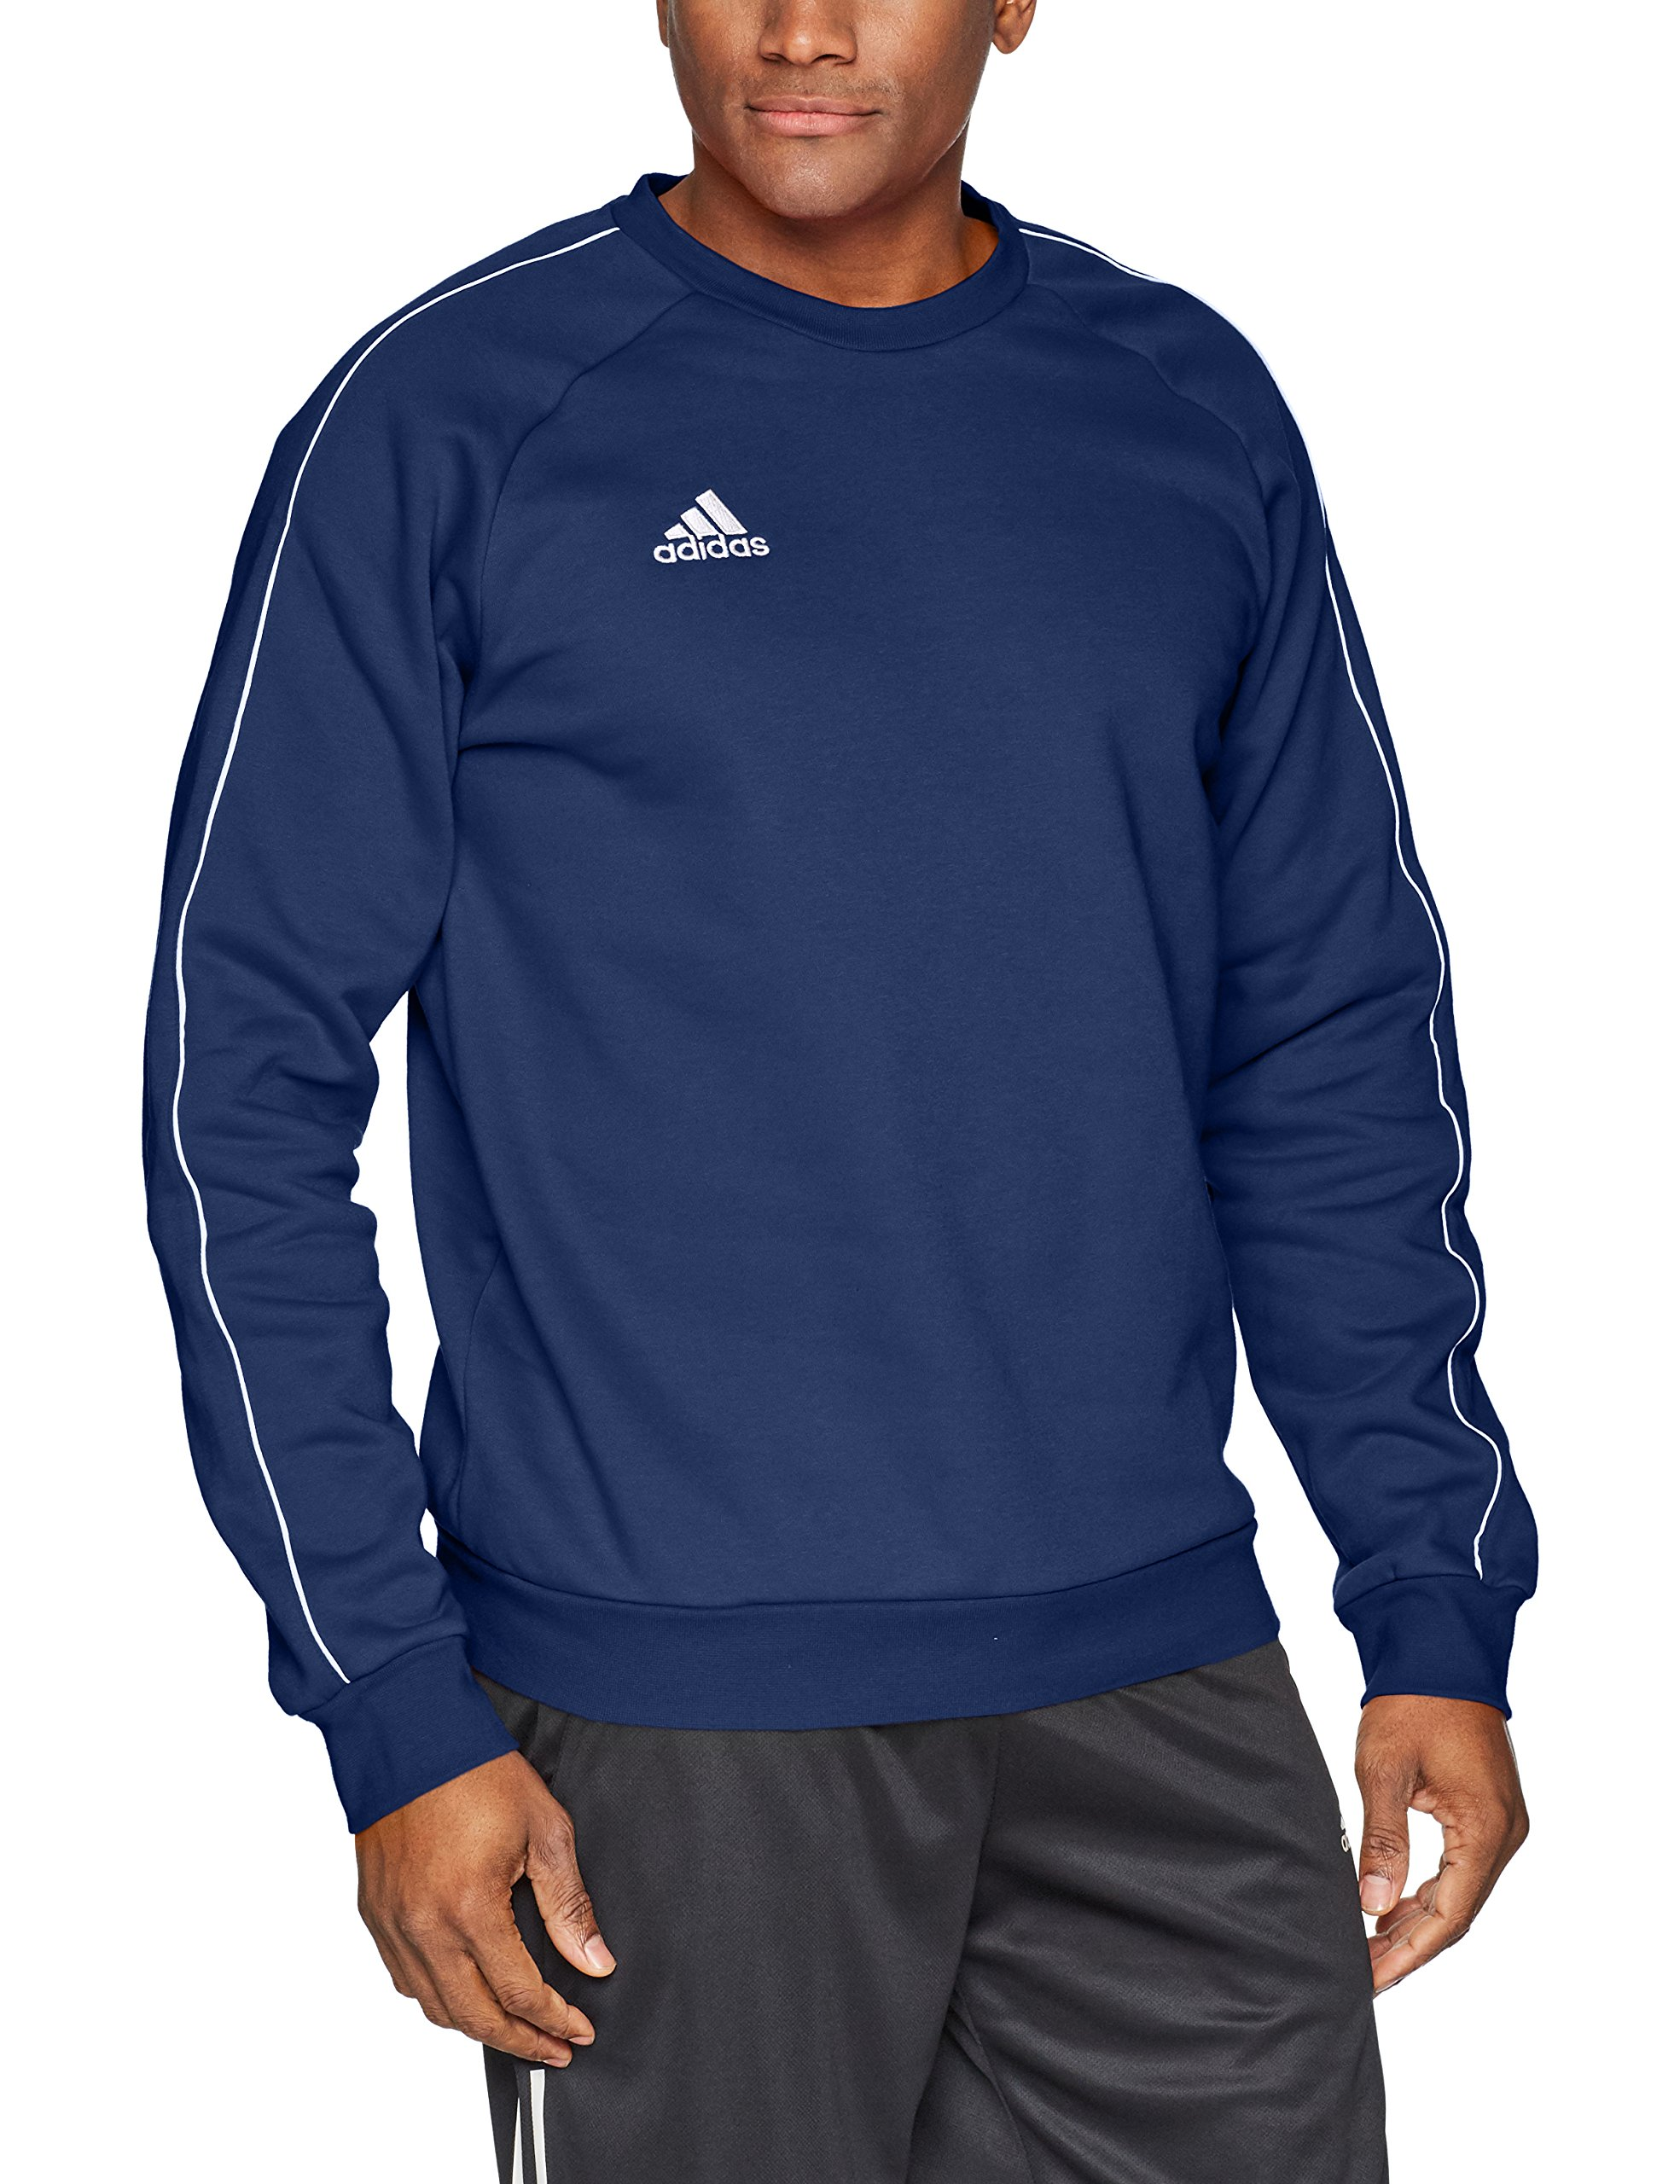 adidas Men's Core 18 Soccer Sweatshirt, Dark Blue/White, 3X-Large by adidas